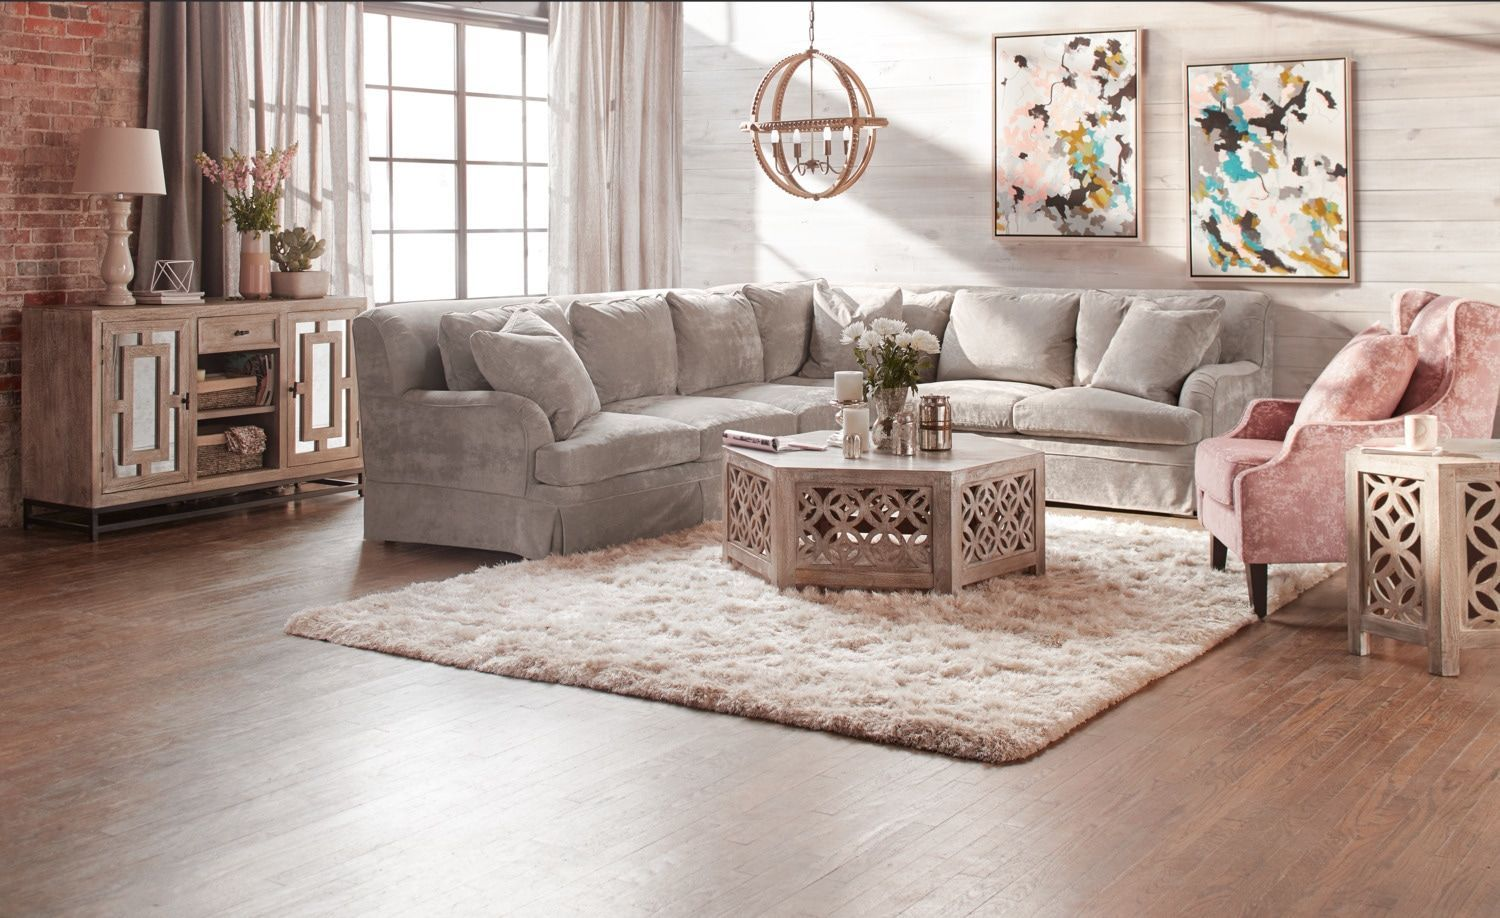 Wondrous Campbell Cumulus 2 Piece Sectional With Left Facing Sofa Onthecornerstone Fun Painted Chair Ideas Images Onthecornerstoneorg